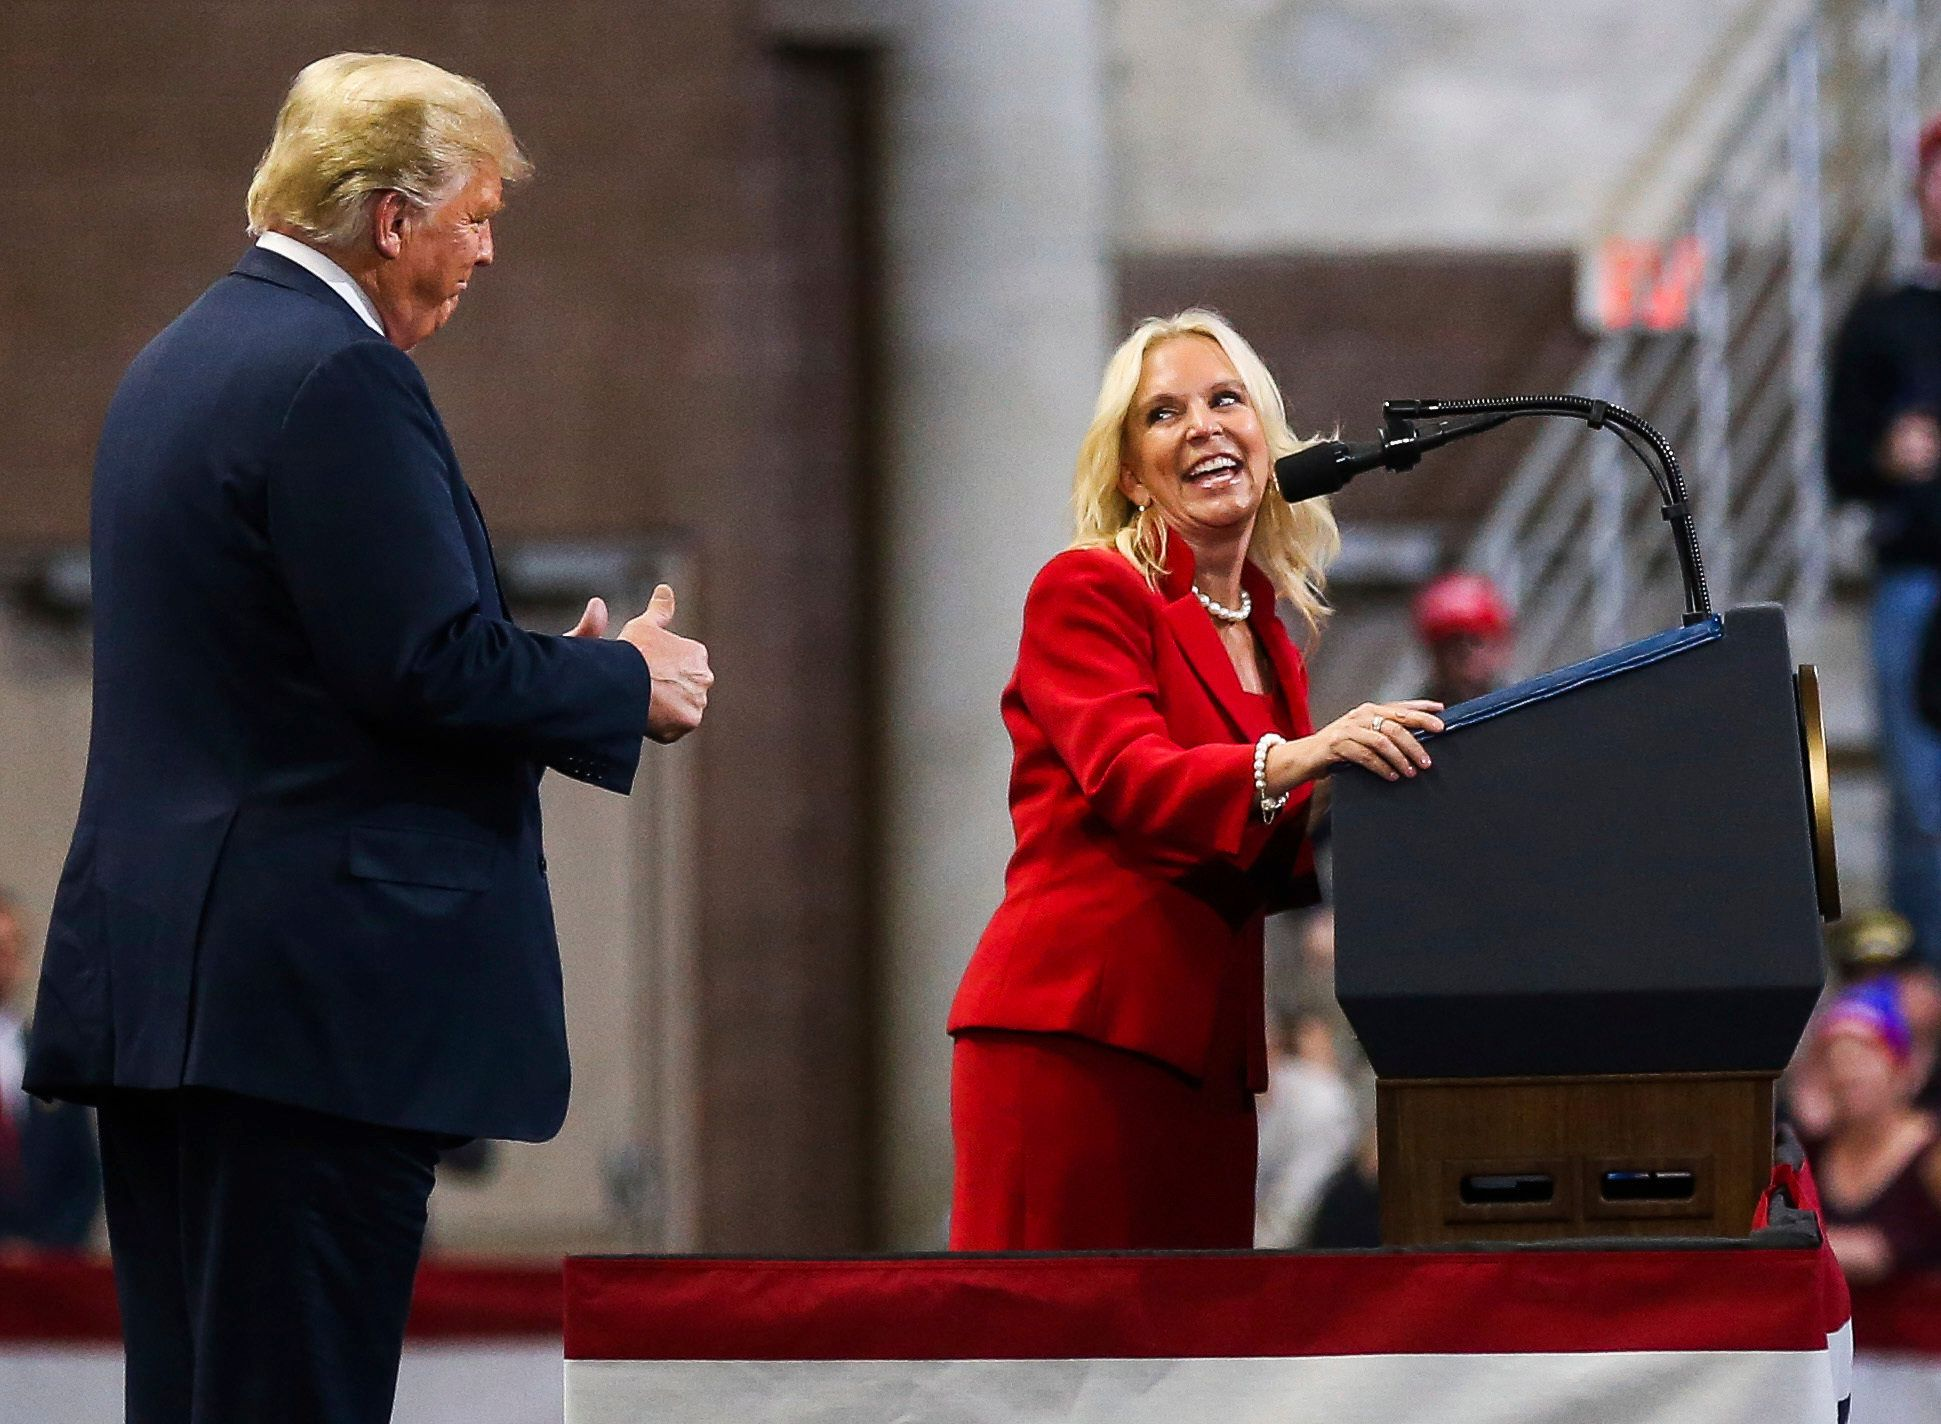 Karin Housley, a GOP candidate for the U.S. Senate, looks back at President Donald Trump while addressing the crowd during a rally, Thursday, Oct. 4, 2018, at the Mayo Civic Center in Rochester, Minn. (Andrew Link/The Rochester Post-Bulletin via AP)